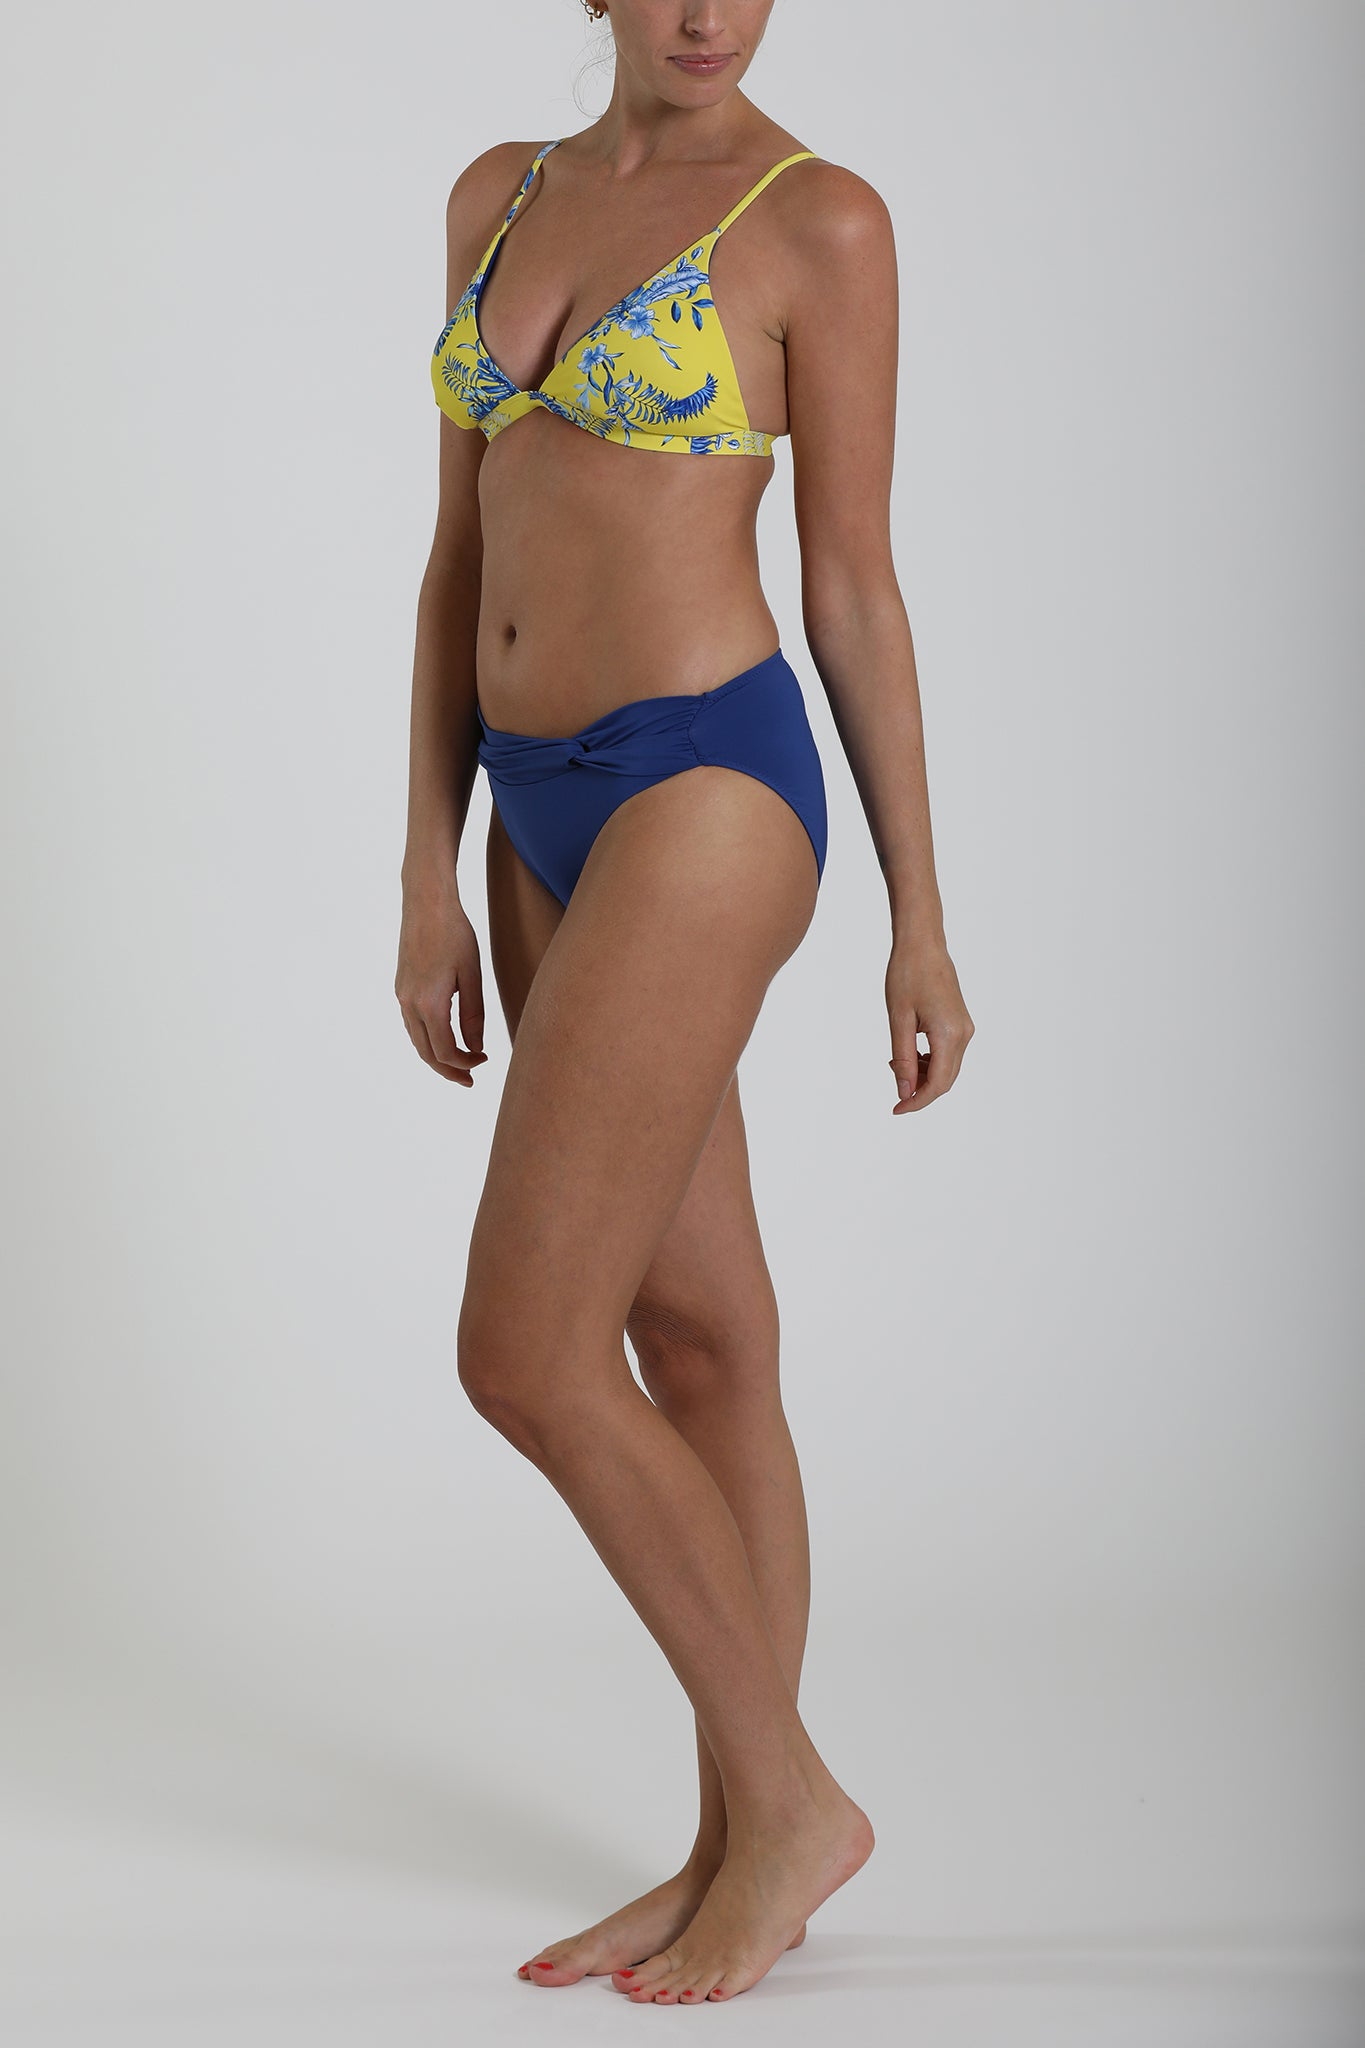 MALDIVES - Twist front detail swimwear bikini bottom - Sodalite Blue